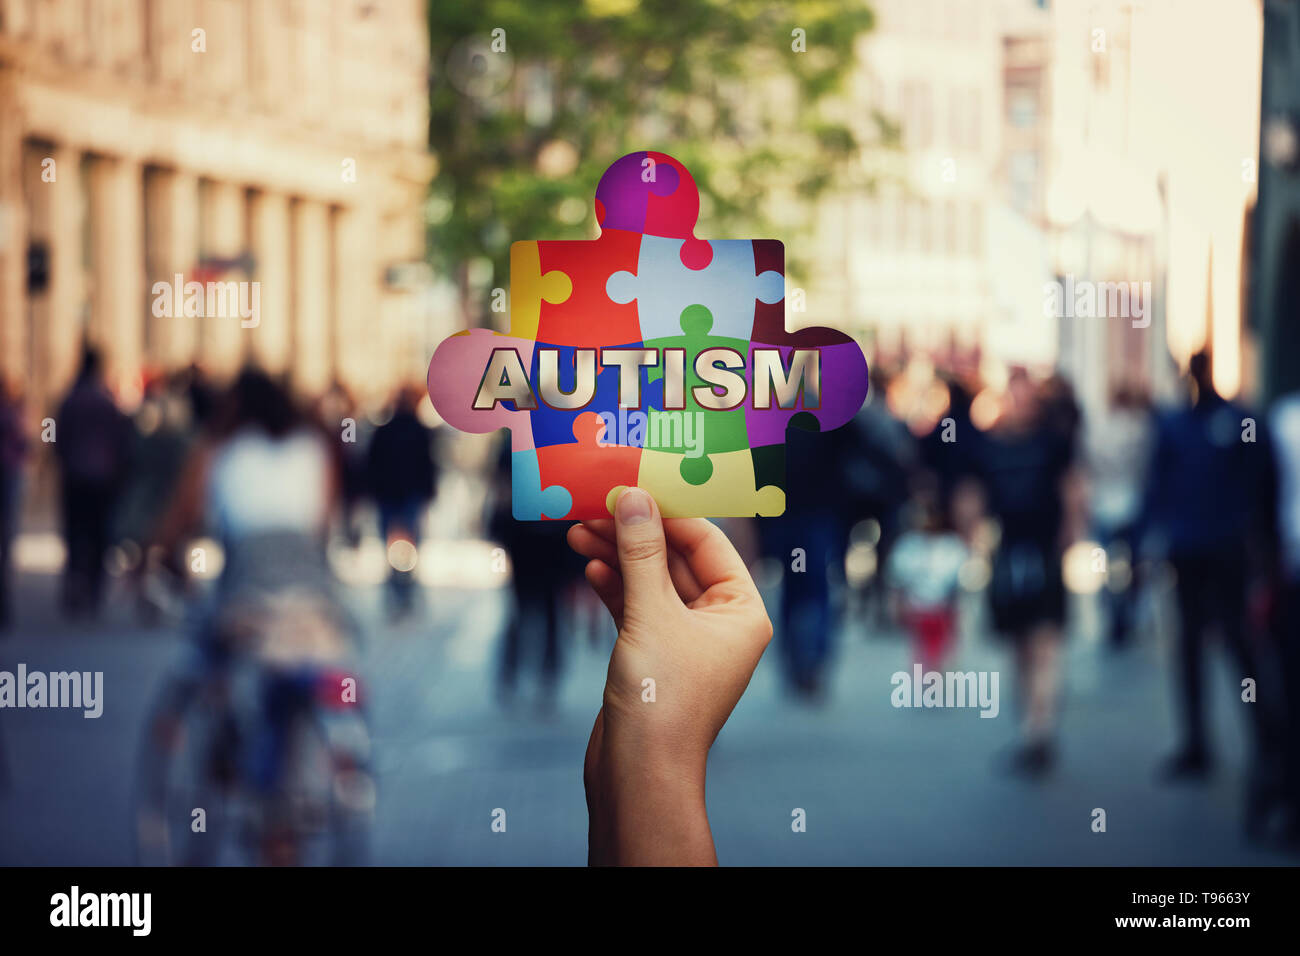 I am not alone symbol of Autism as a child hand holding a colorful puzzle piece over a crowded street background. Social awareness, autistic education - Stock Image